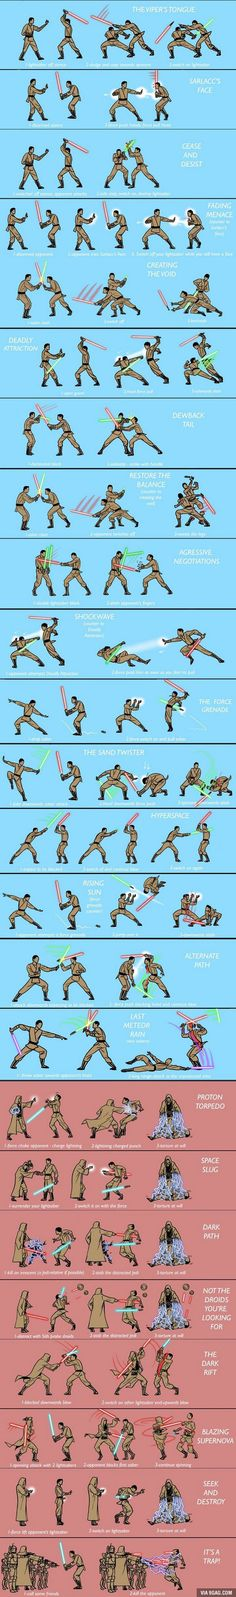 Alternate Lightsaber Techniques